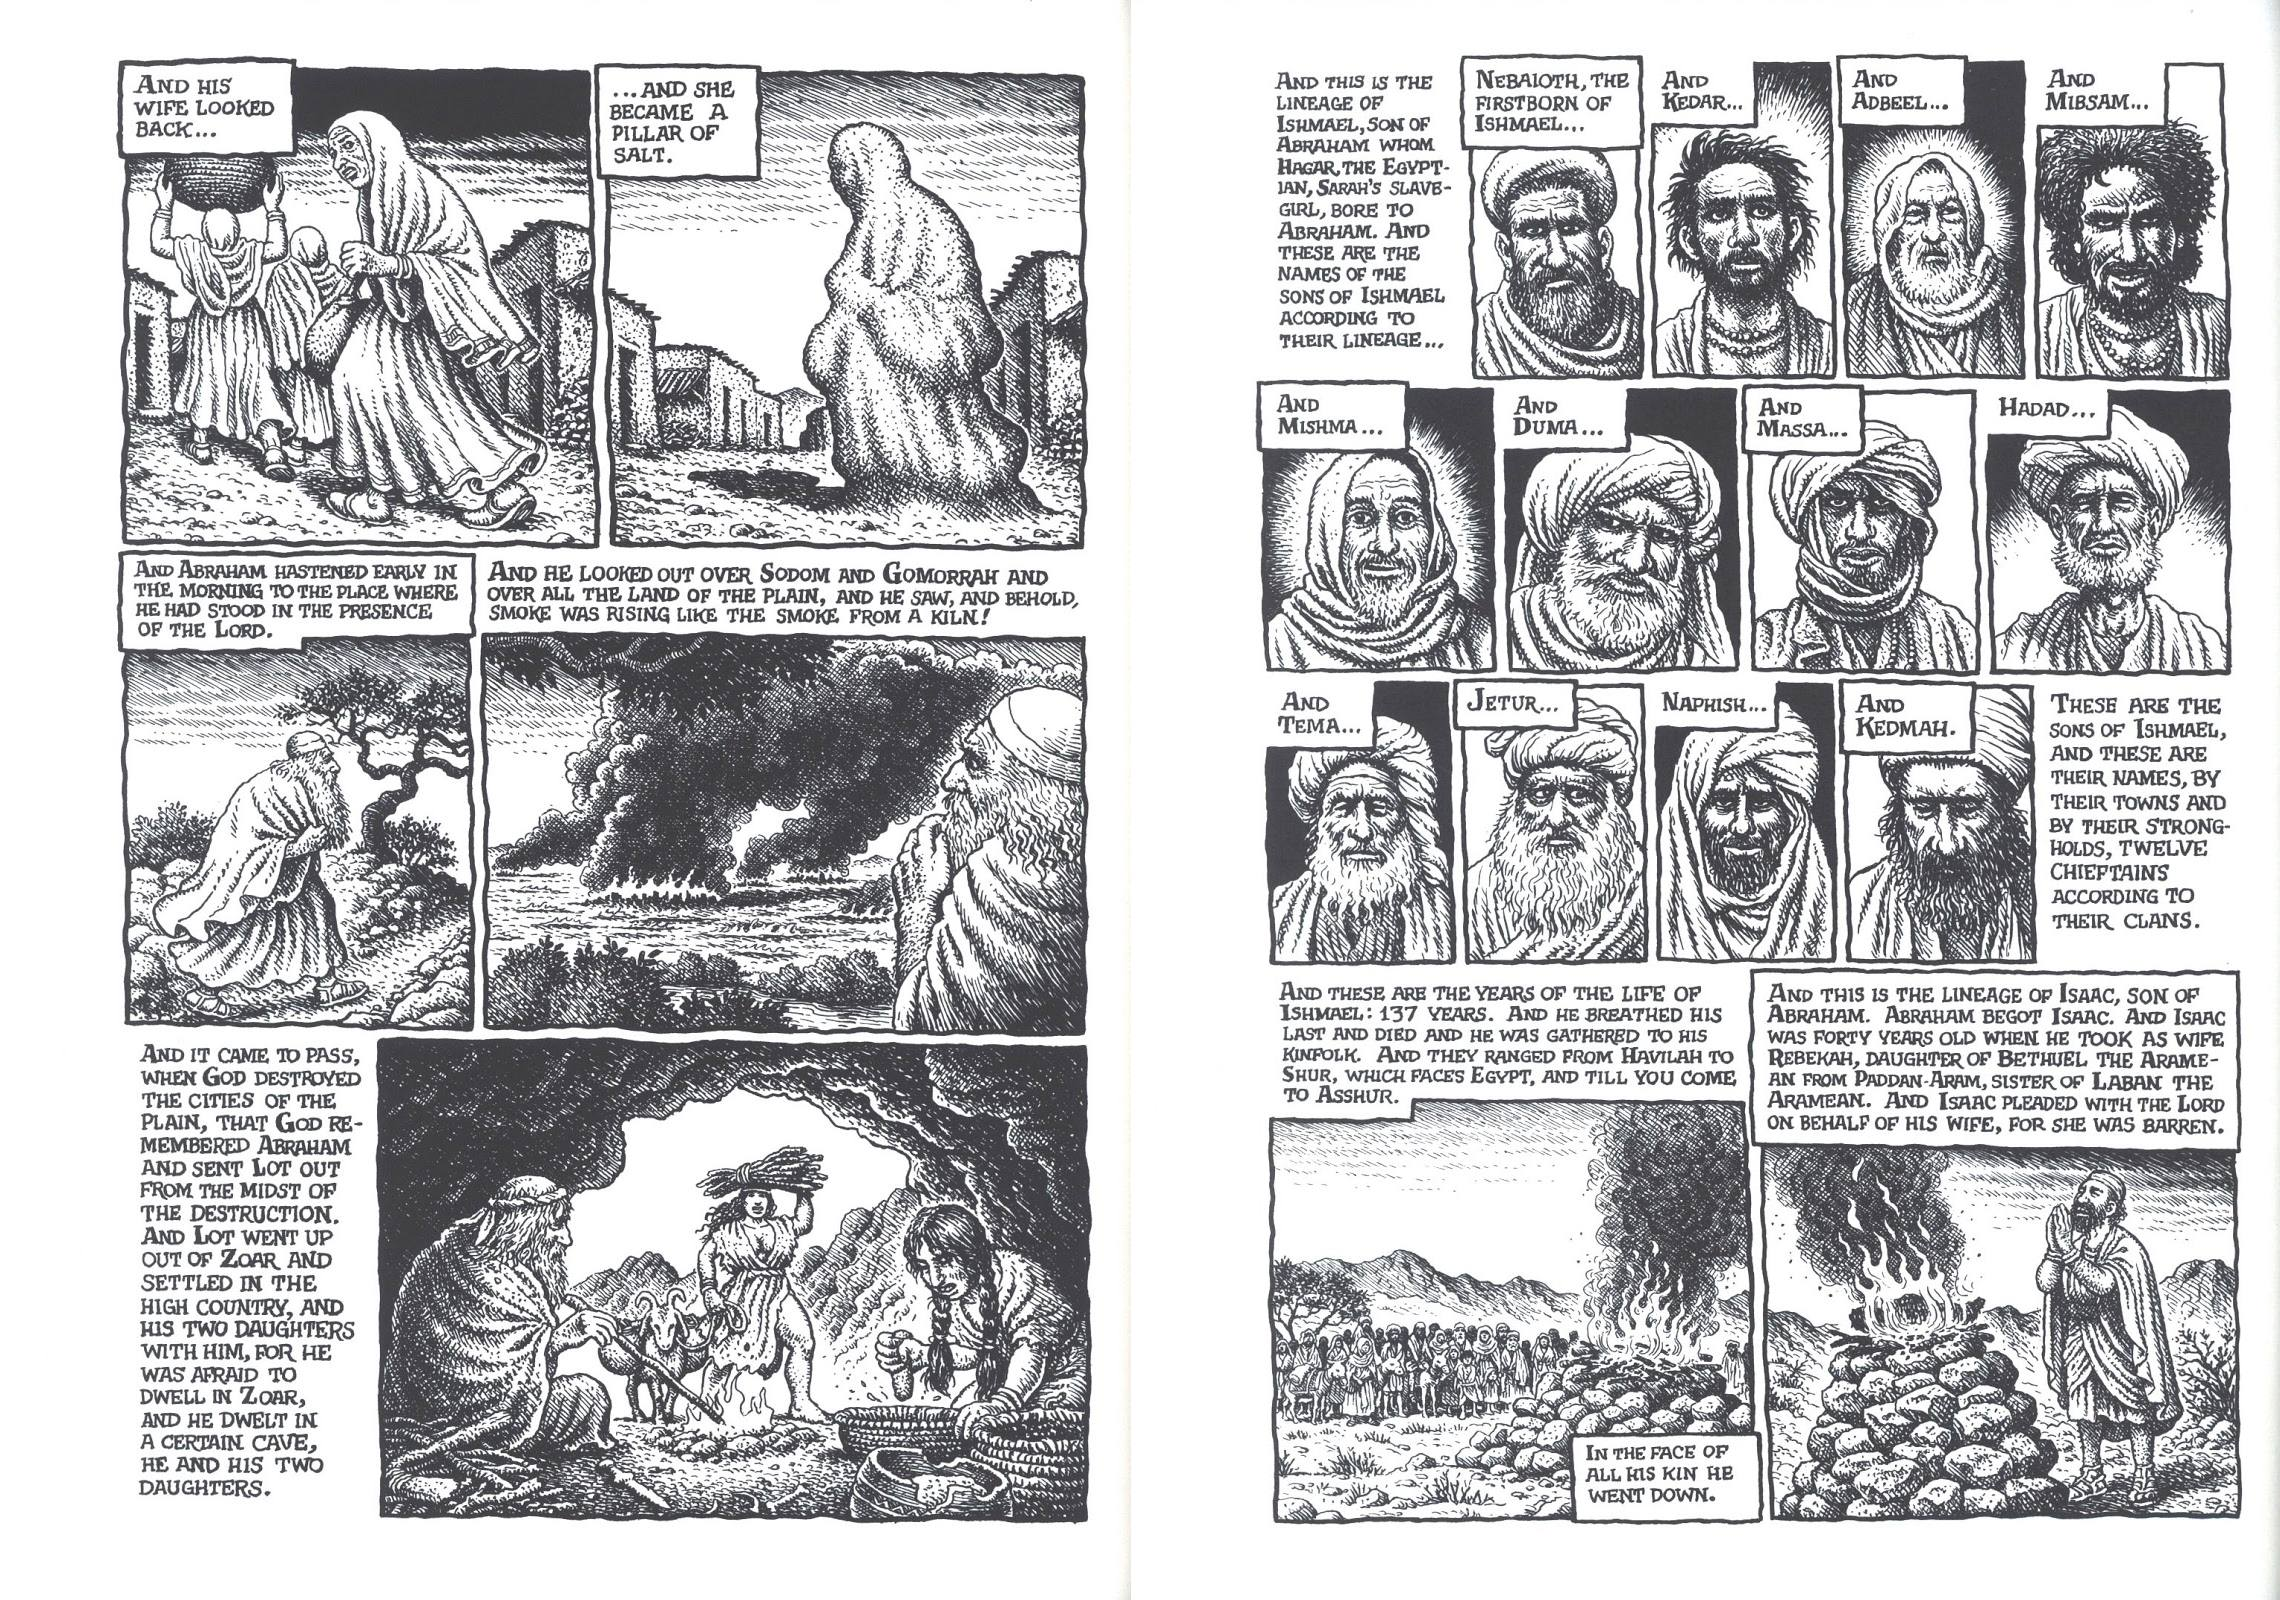 The Book of Genesis illustrated by R. Crumb review